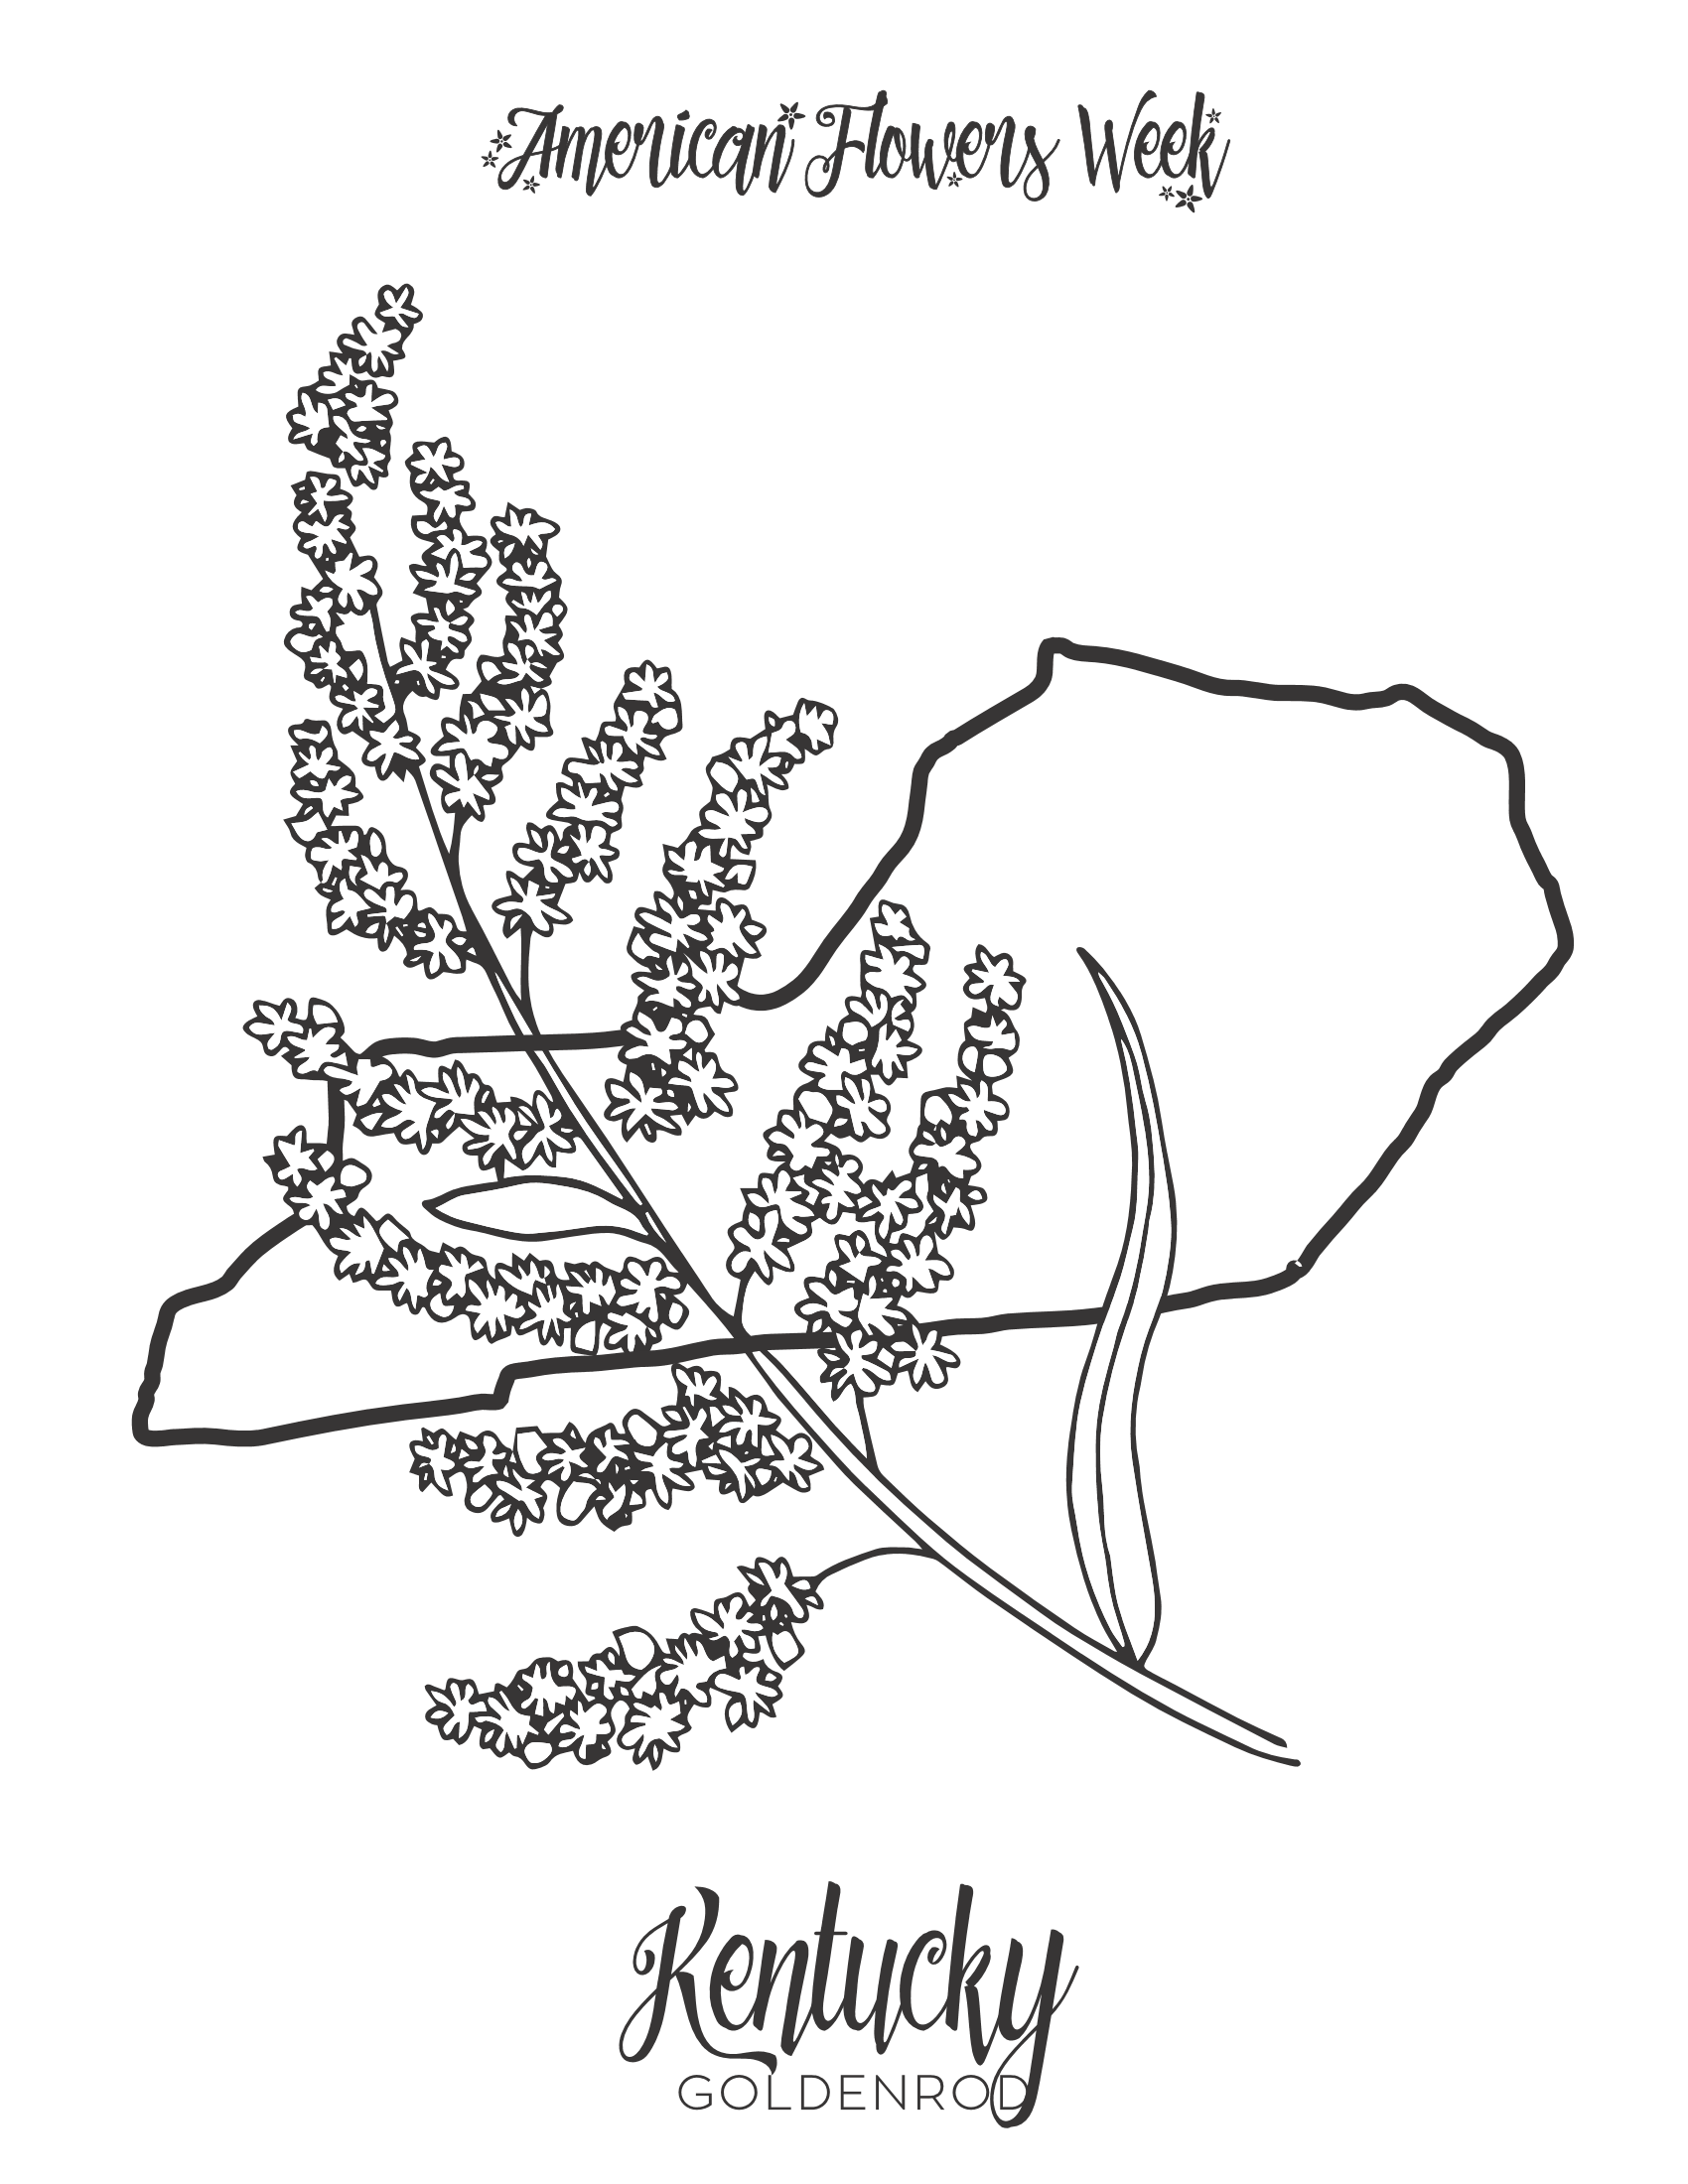 kentucky state flower 50 state flowers free coloring pages american flowers week flower kentucky state